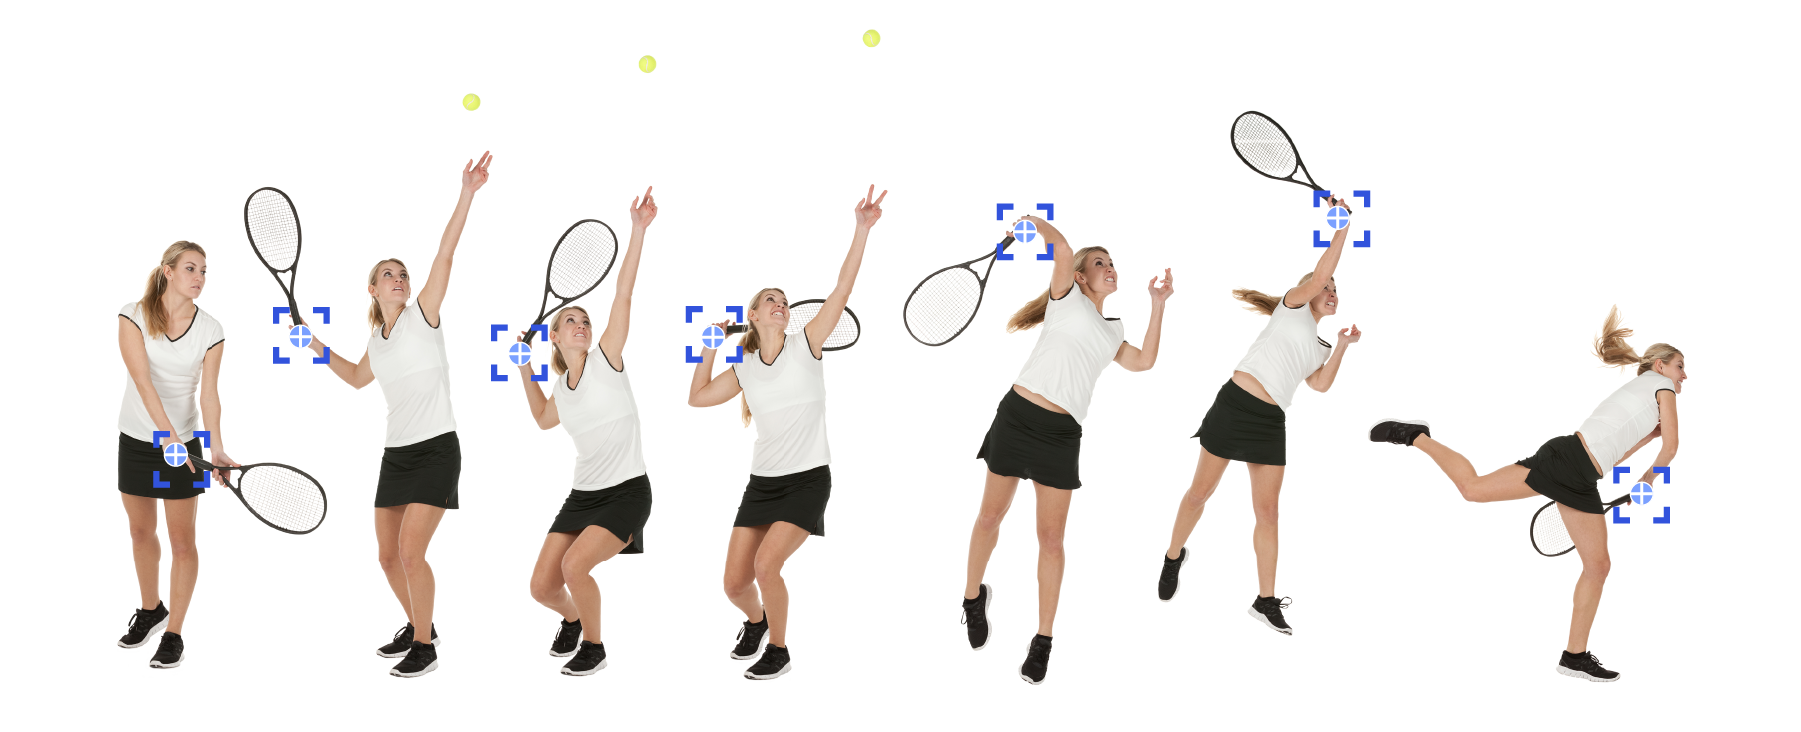 Tracking the motion of a woman tennis player serving via seven stop-motion images